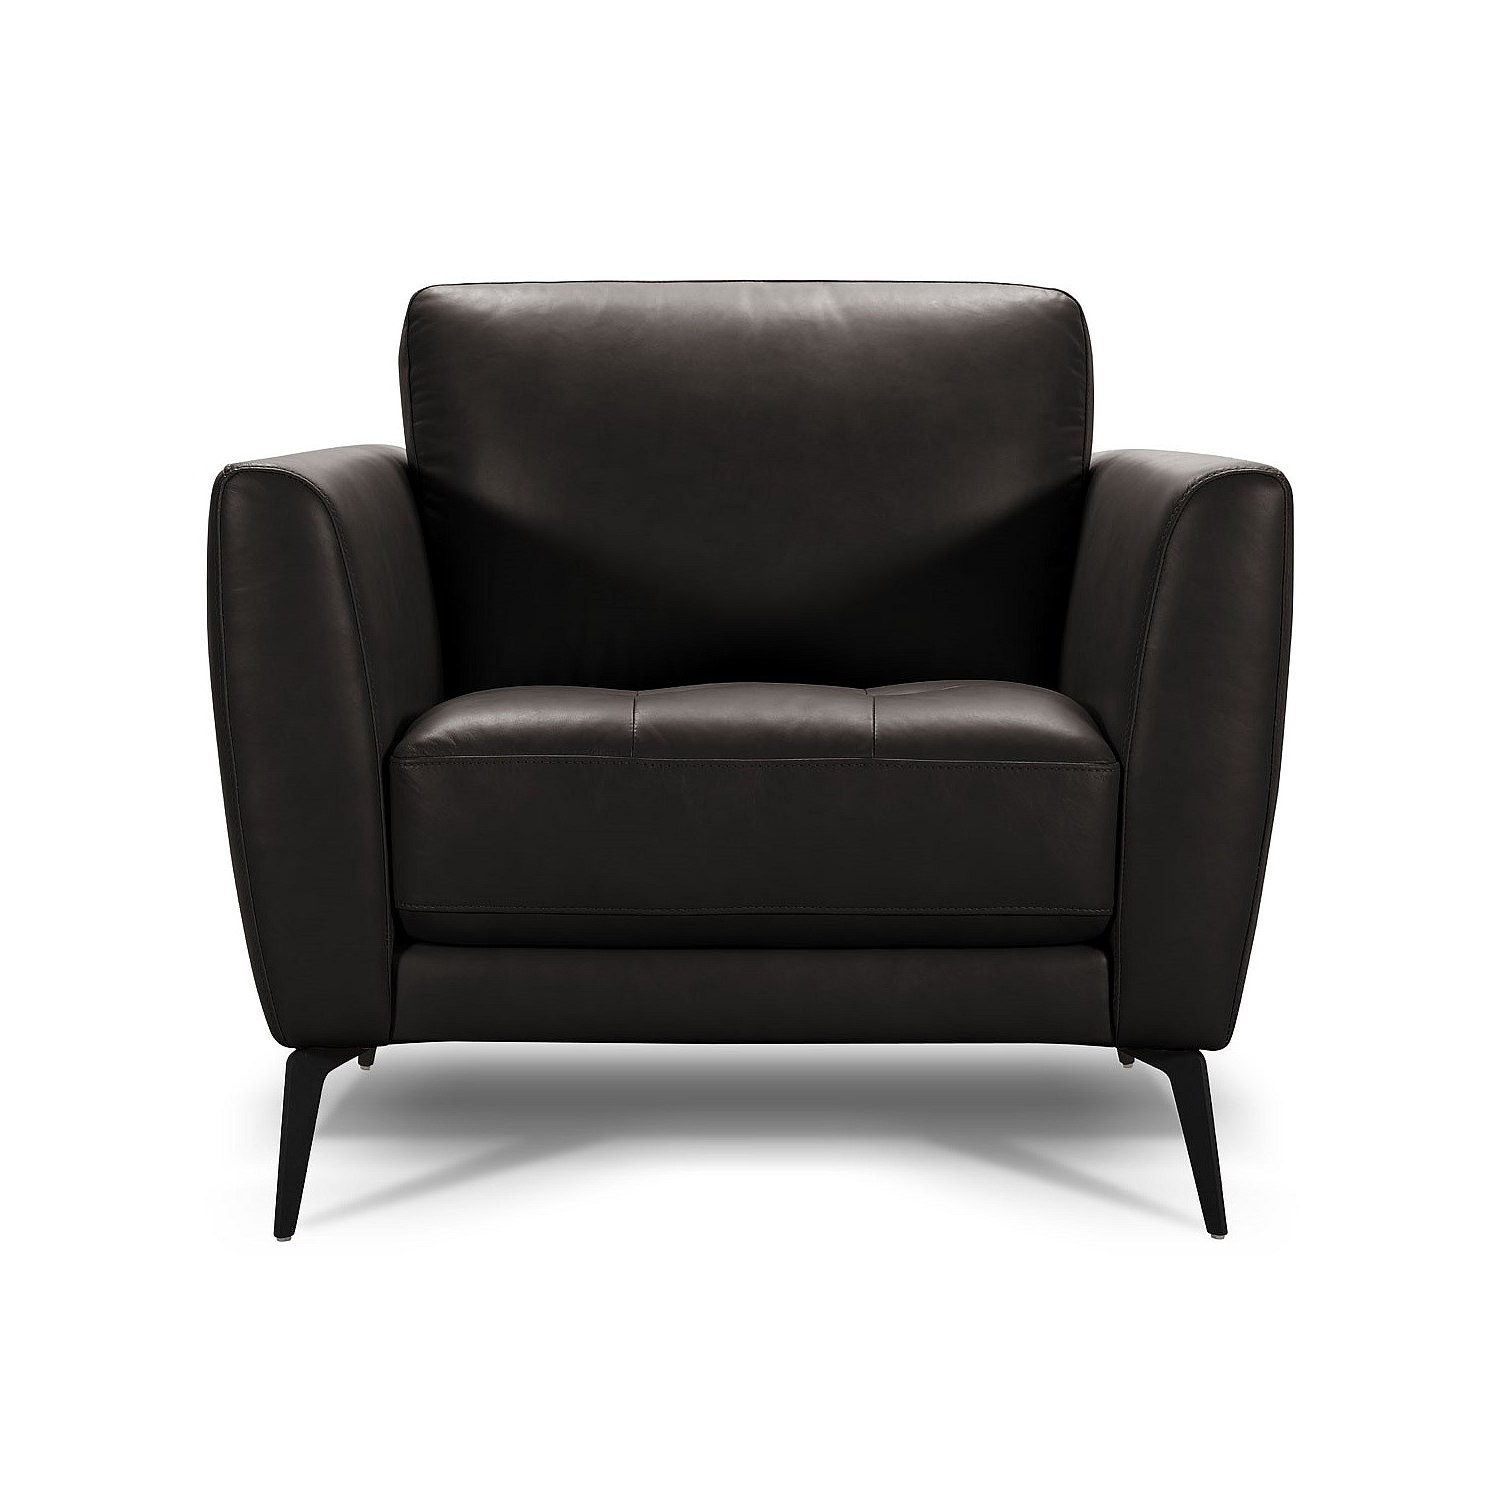 Armchairs And Occasional Chairs – Attica Armchair Union With Regard To Most Recently Released Attica Arm Chairs (View 3 of 20)